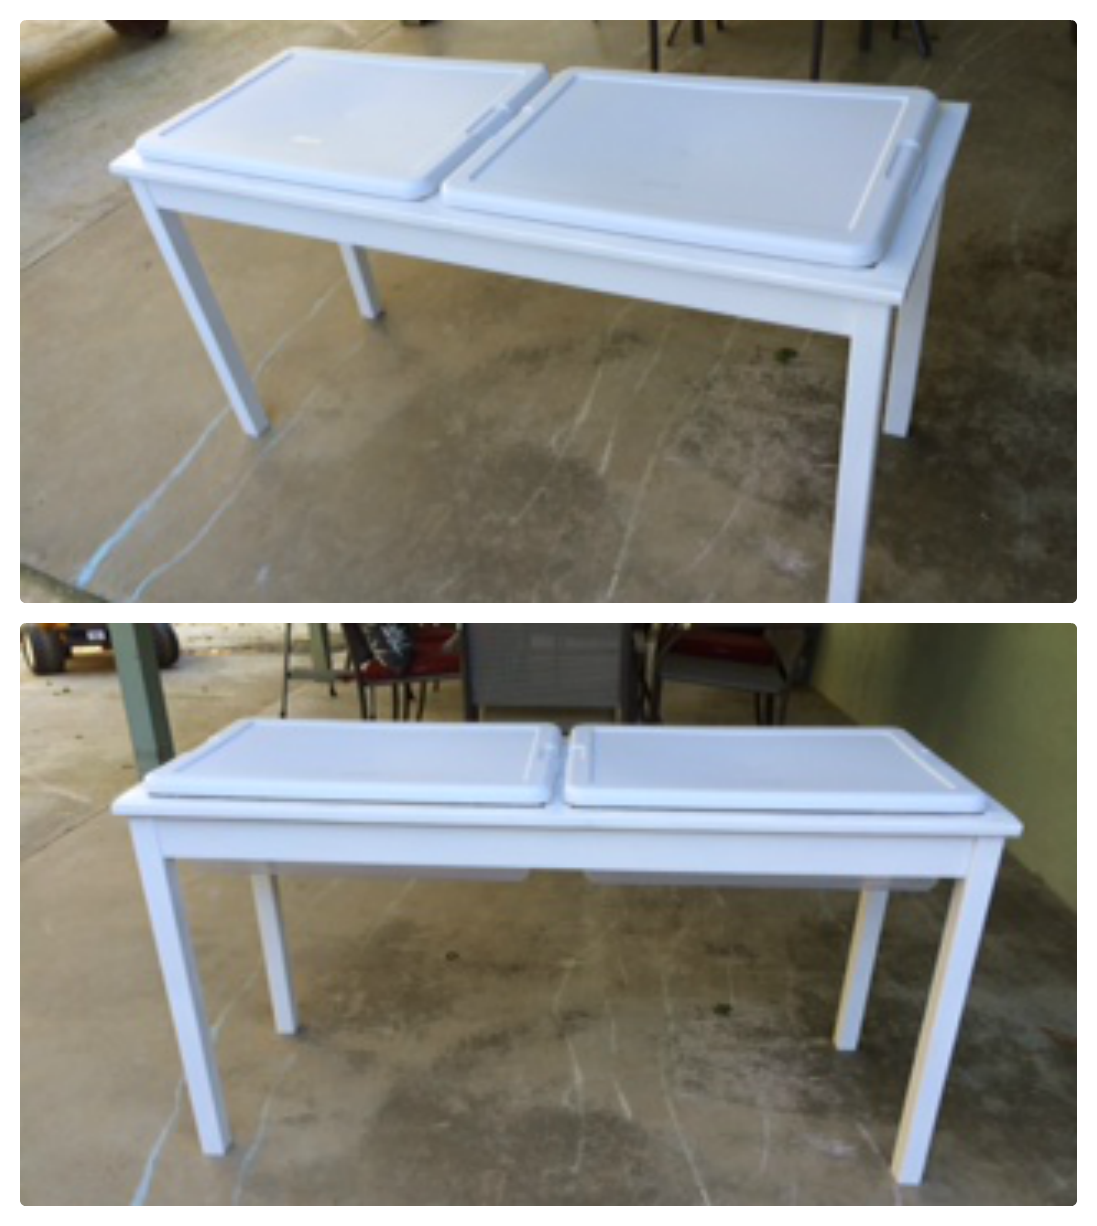 Popular with the poplins diy sand and water table for Diy sand and water table pvc